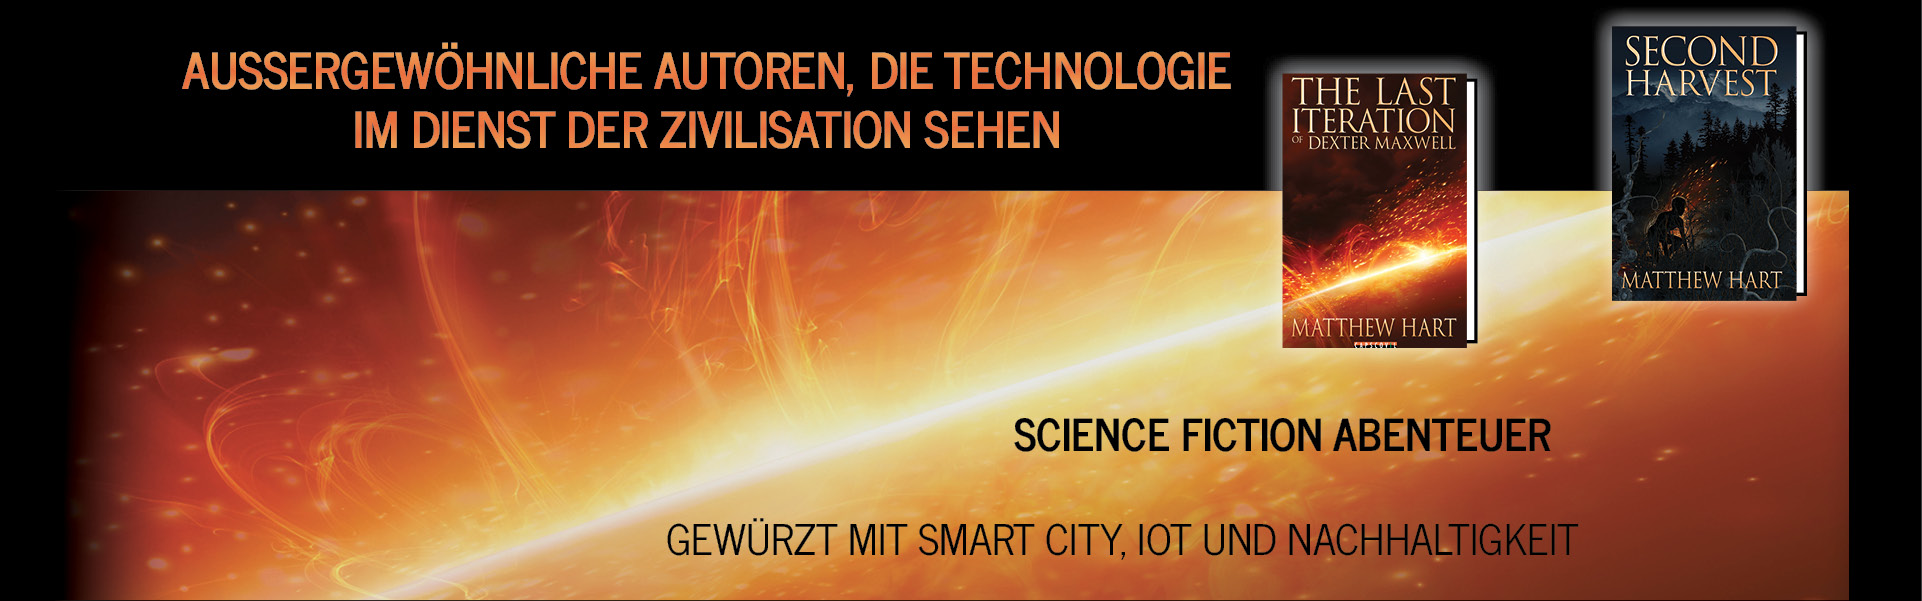 The Last Iteration Science Fiction Roman Serie gewürzt mit Smart City Internet der Dinge Nachhaltigkeit